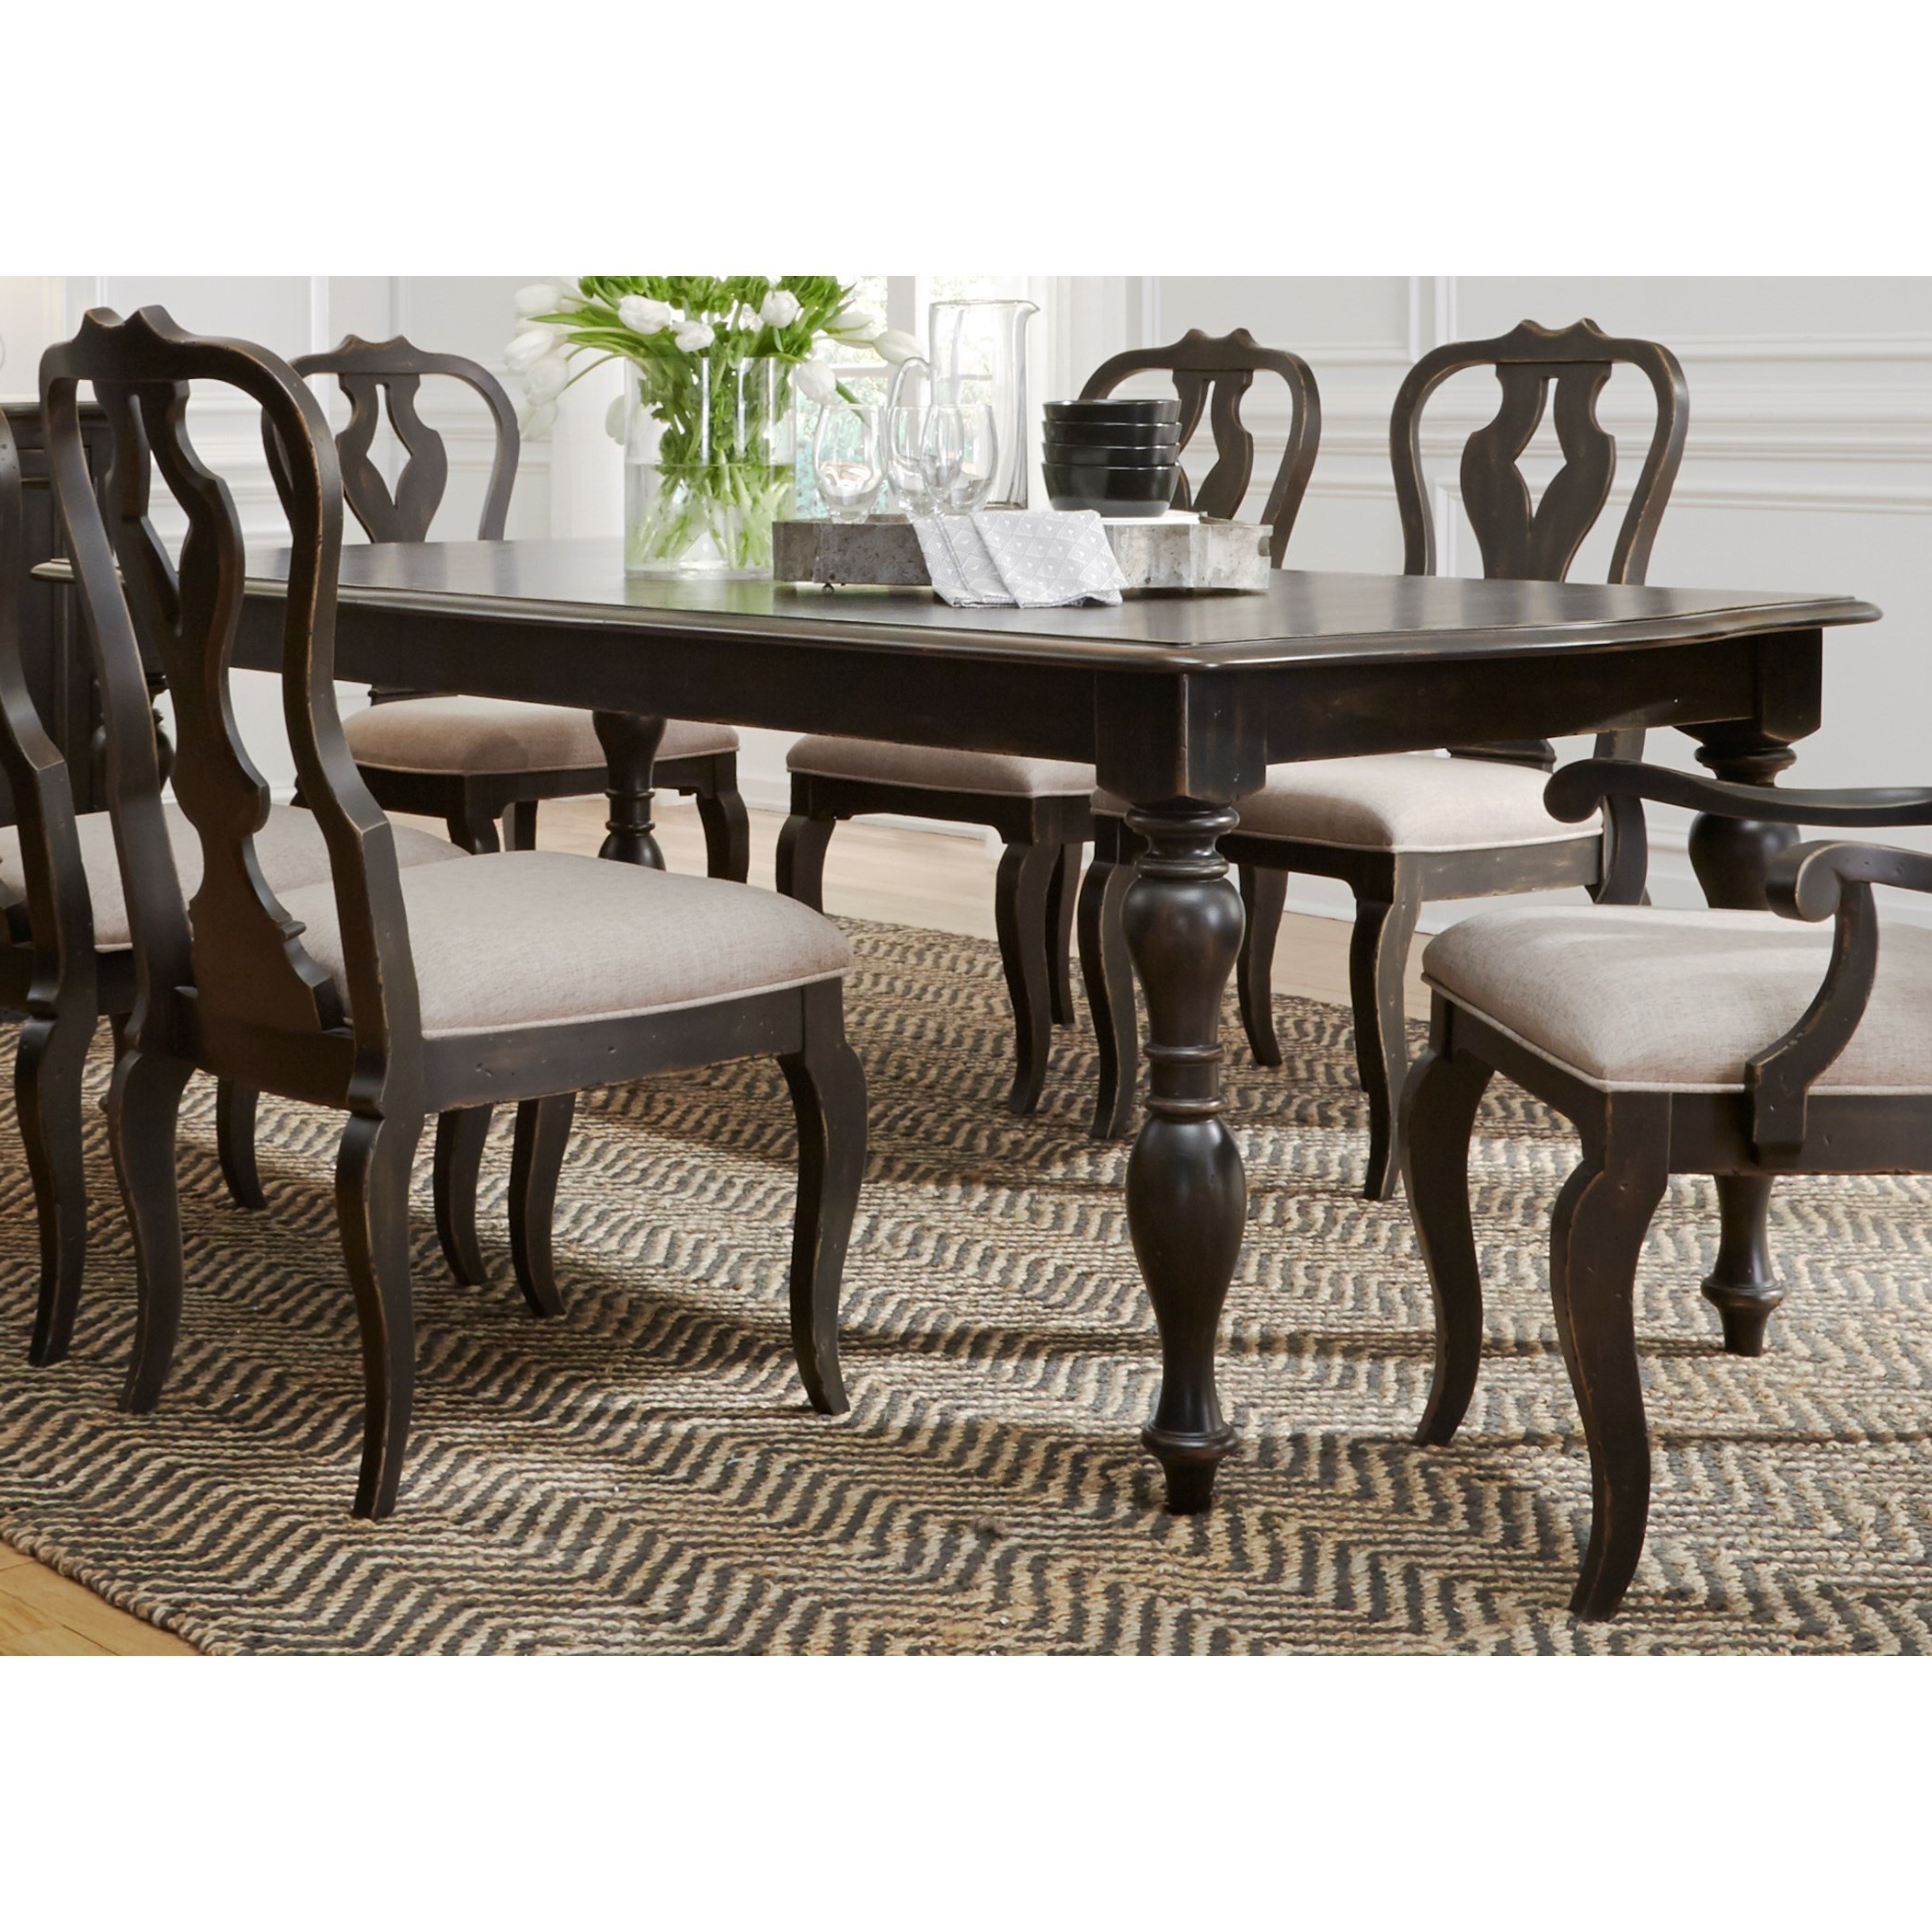 Chesapeake Rectangular Dining Table Regarding Most Recent Rectangular Dining Tables (View 4 of 25)